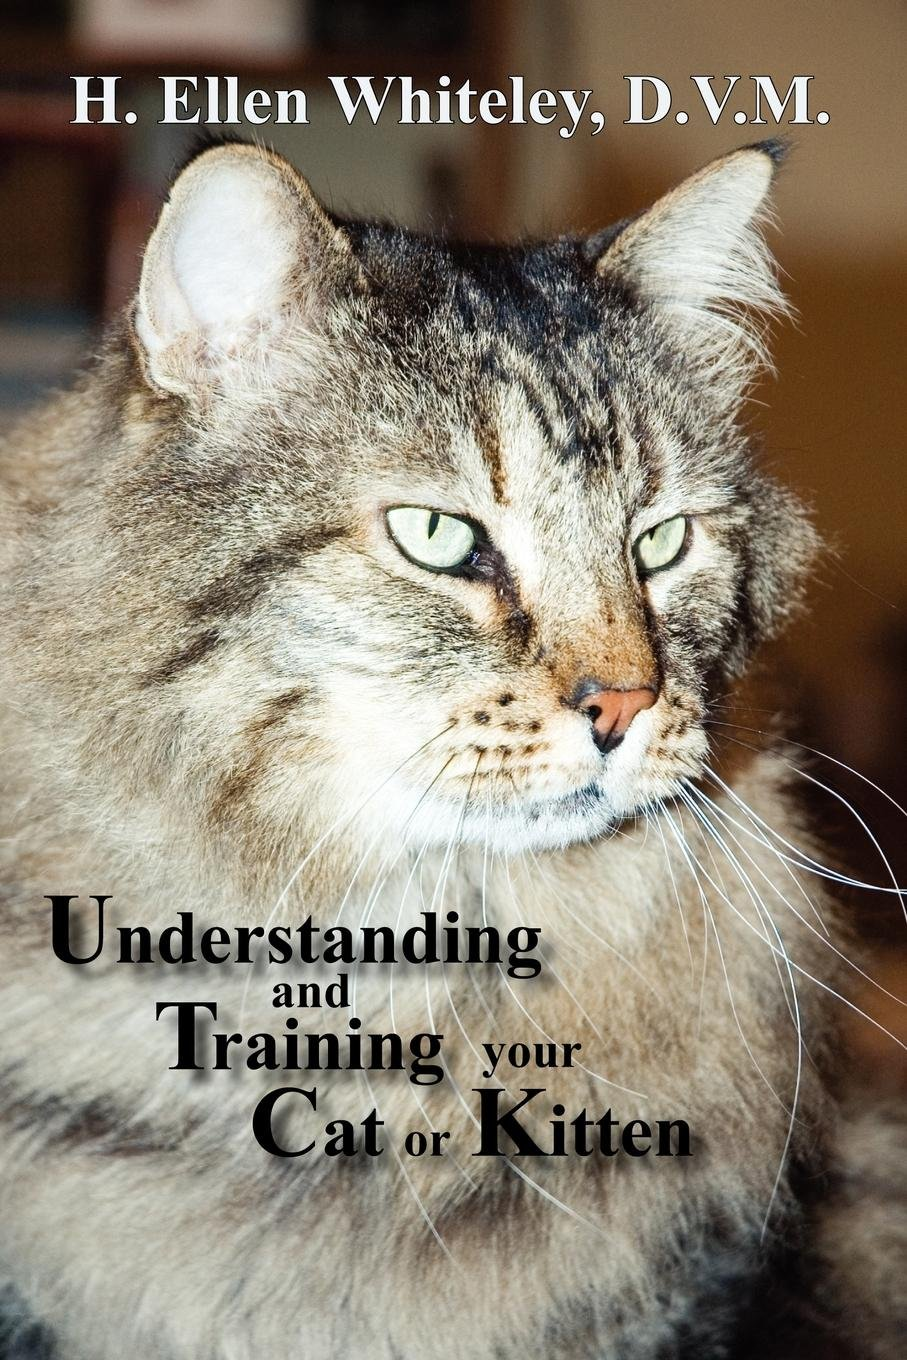 Understanding and Training Your Cat or Kitten